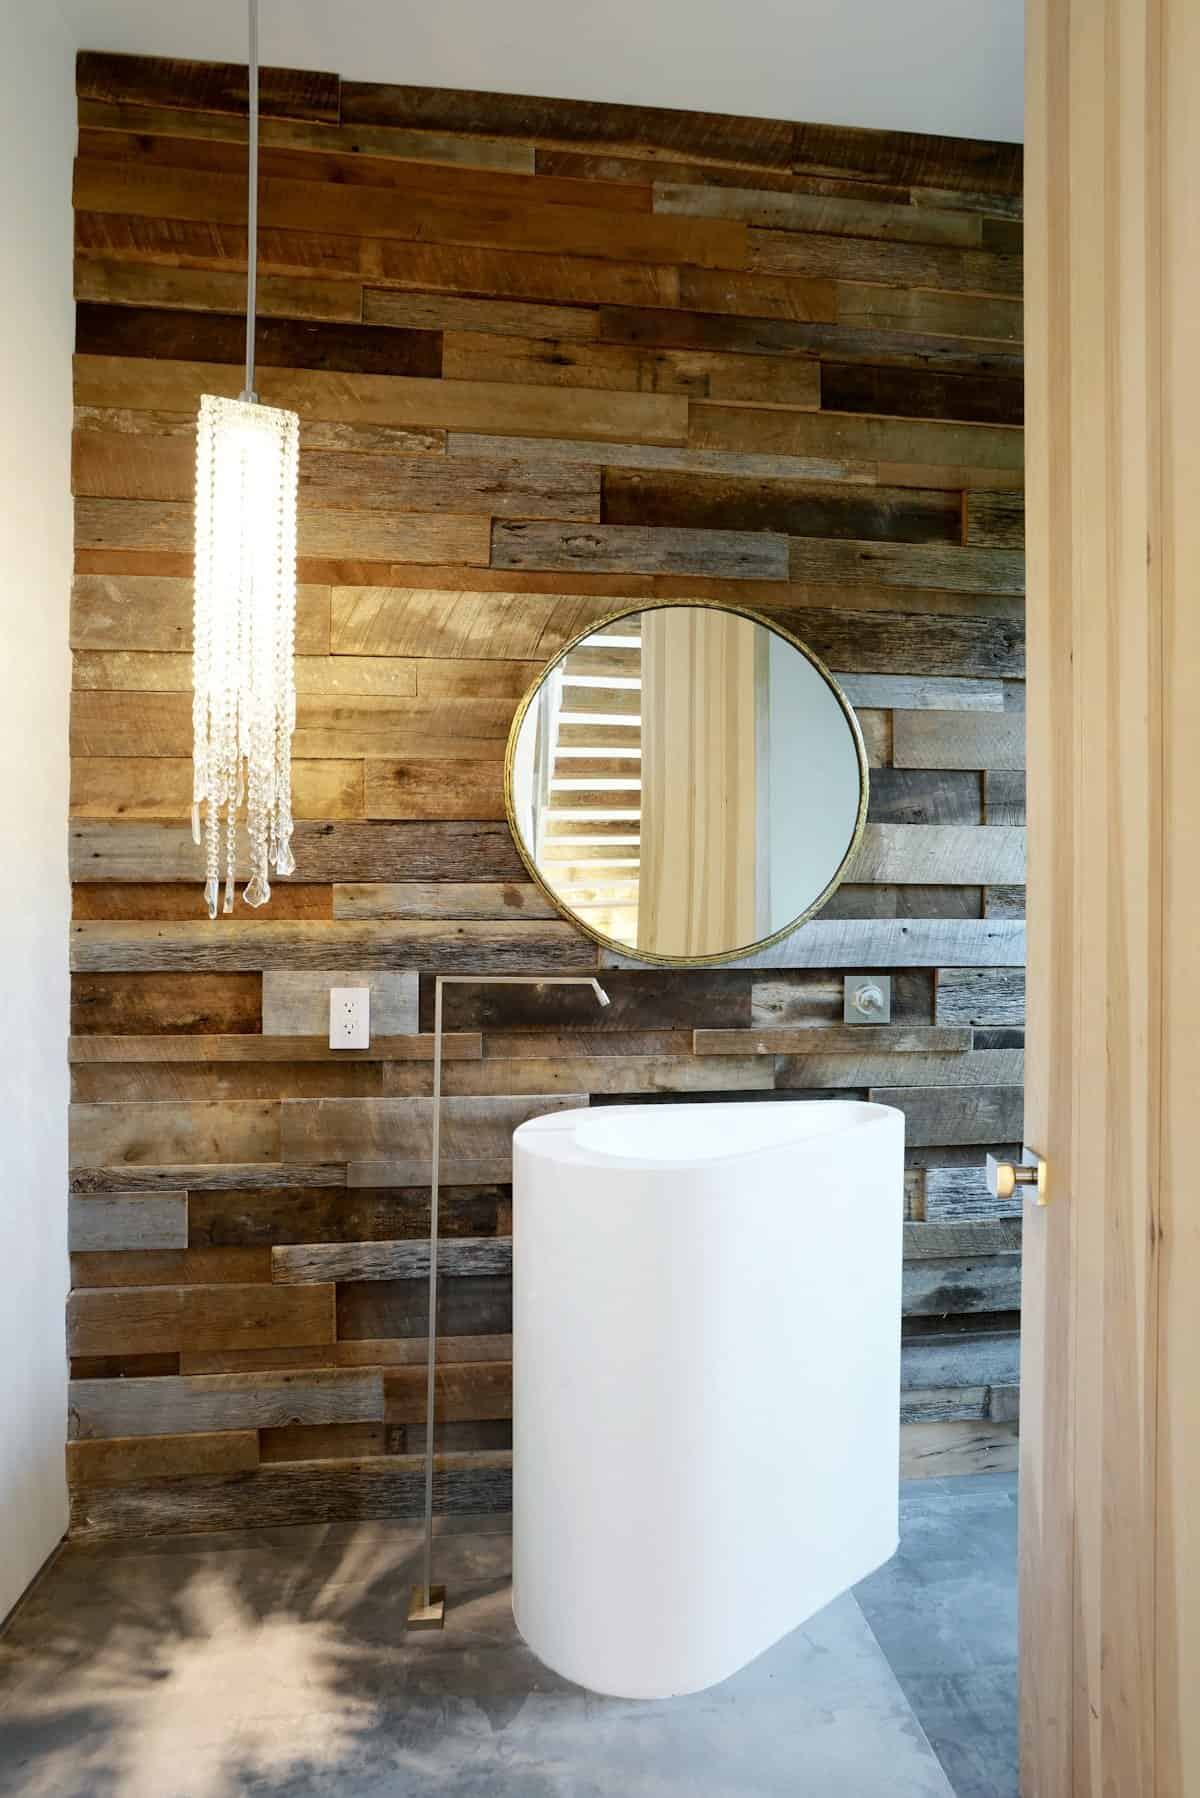 10 Modern Small Bathroom Ideas for Dramatic Design or ... on Modern Small Bathroom  id=28535